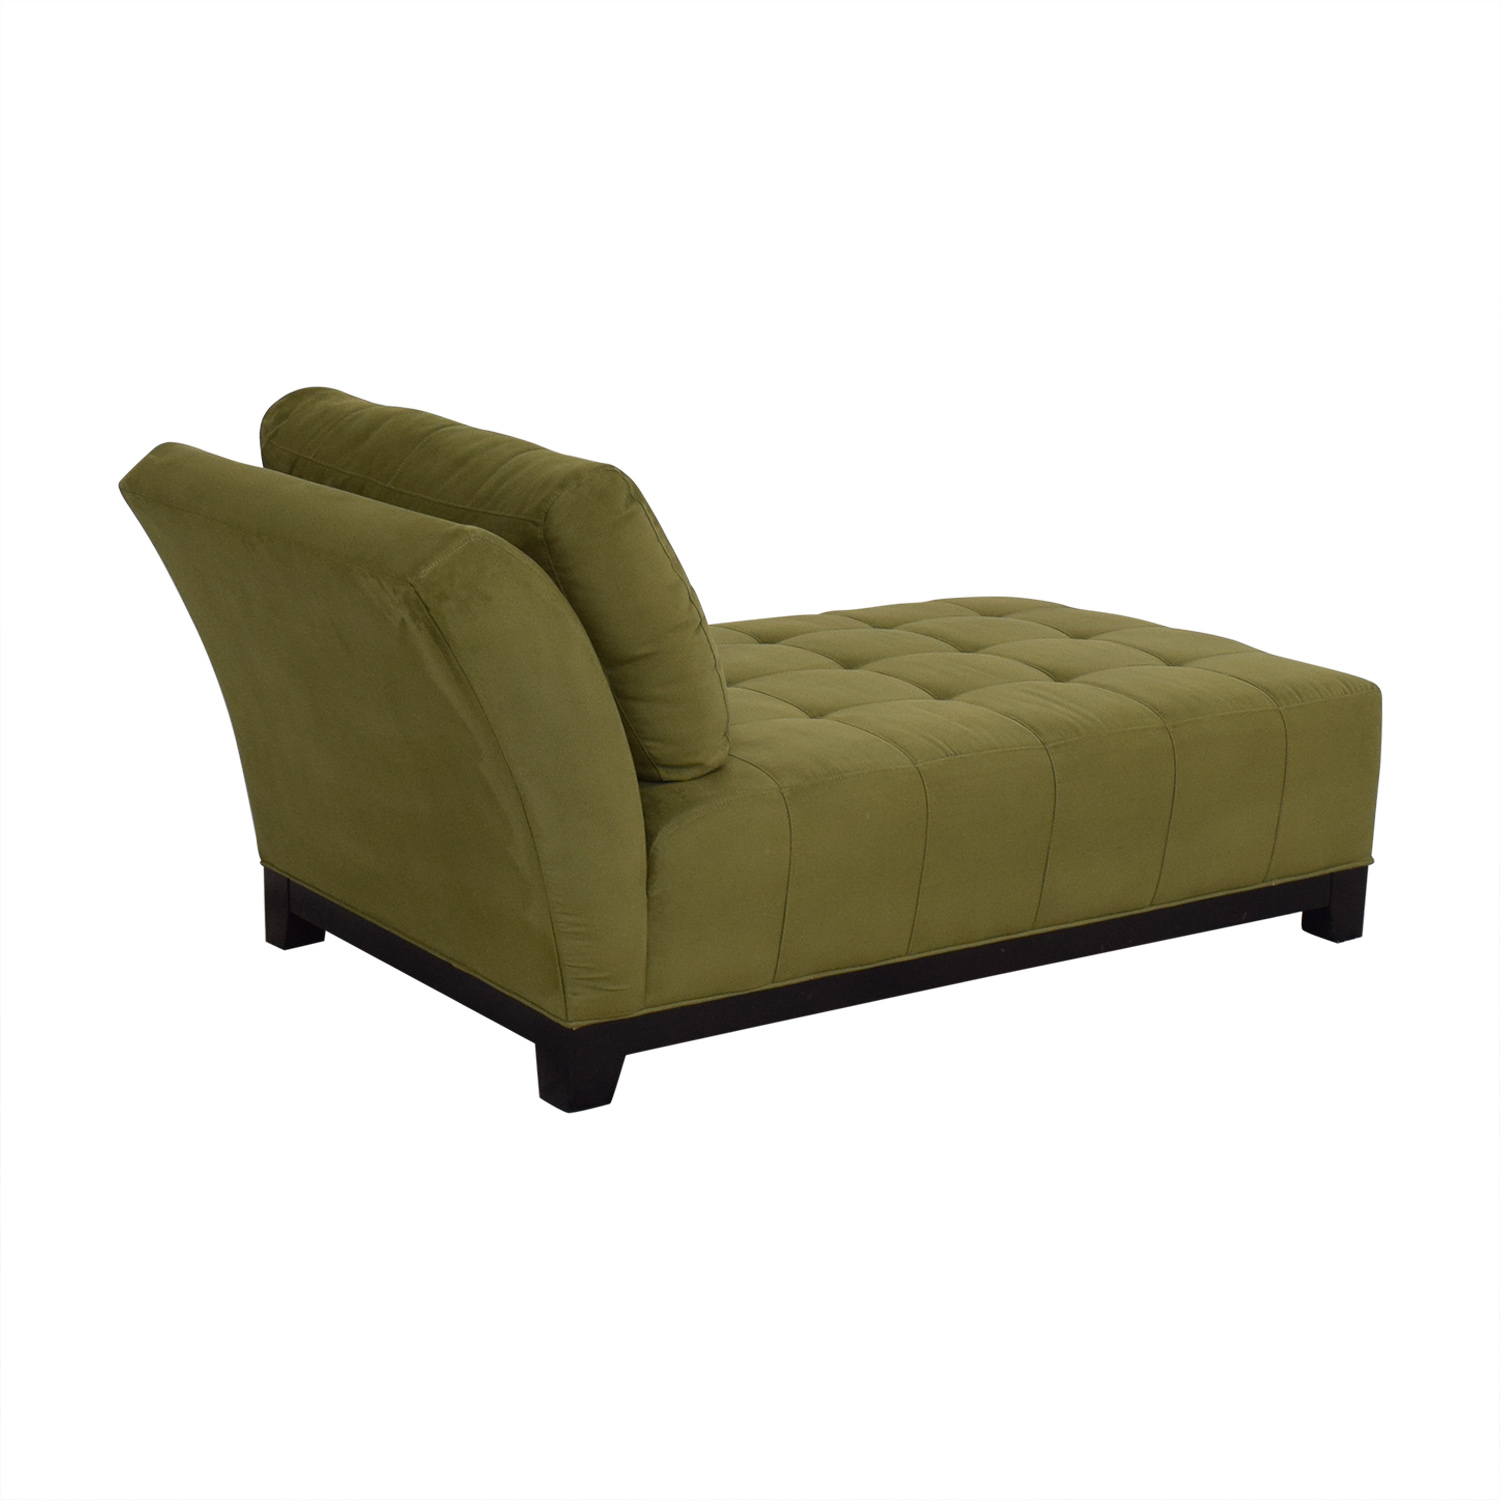 Raymour & Flanigan Raymour & Flanigan Tufted Chaise Lounge nj